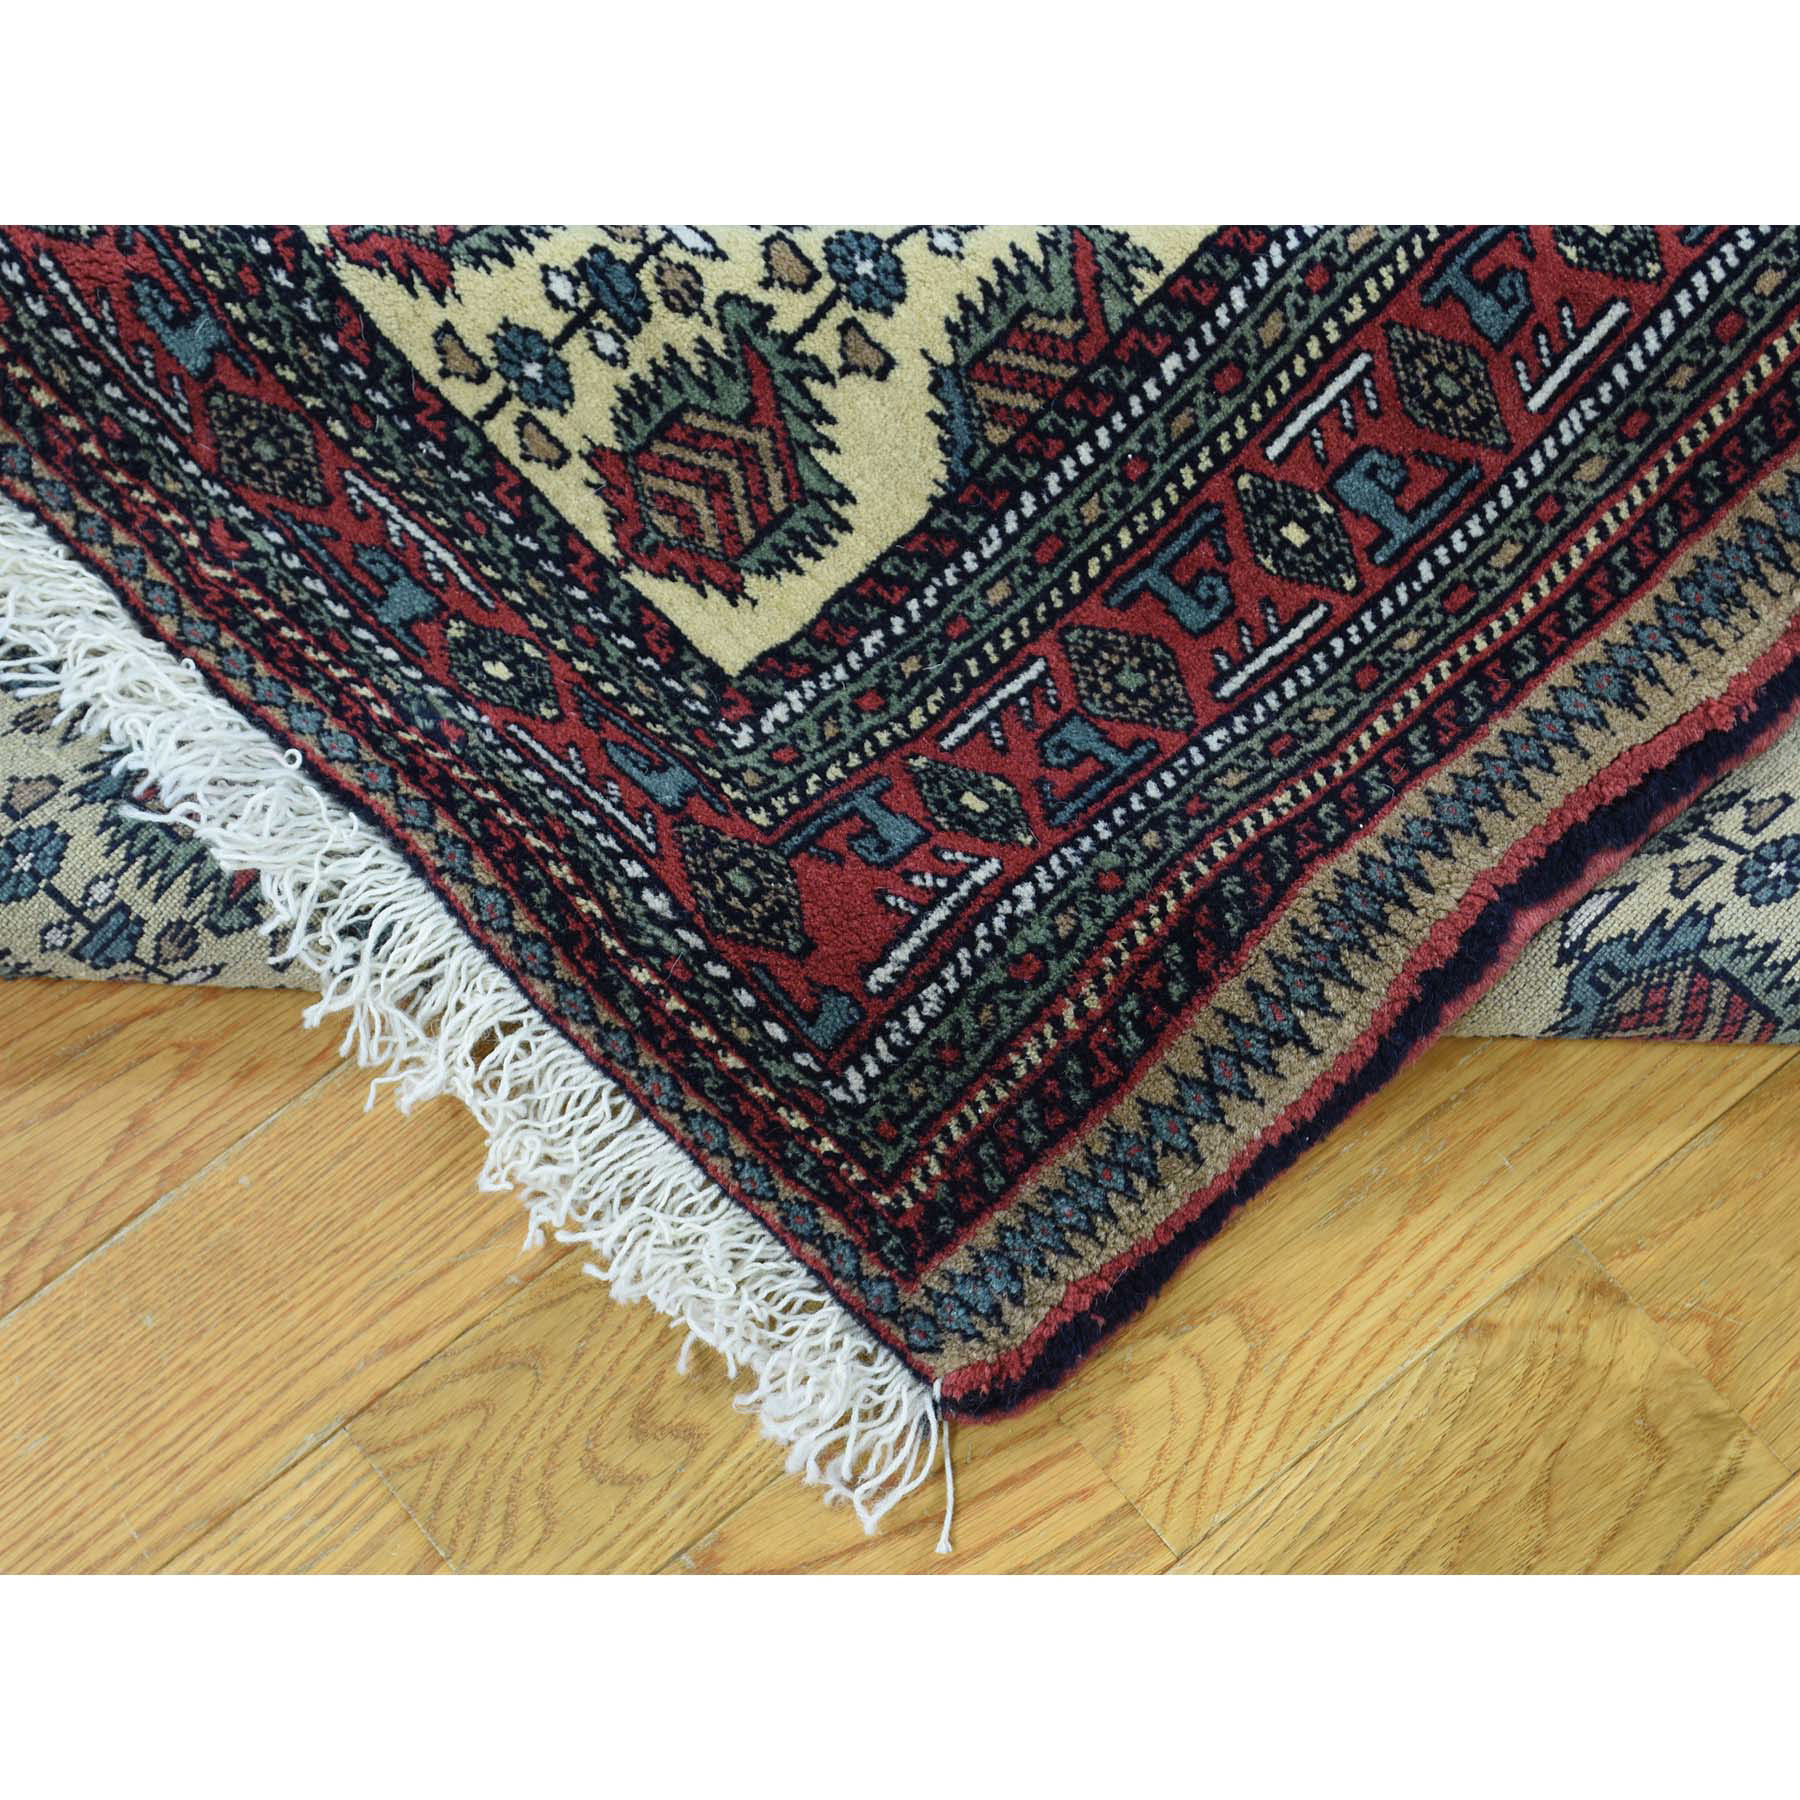 2-10 x13- Northwest Persian Hand-Knotted Tribal Oriental Runner Rug